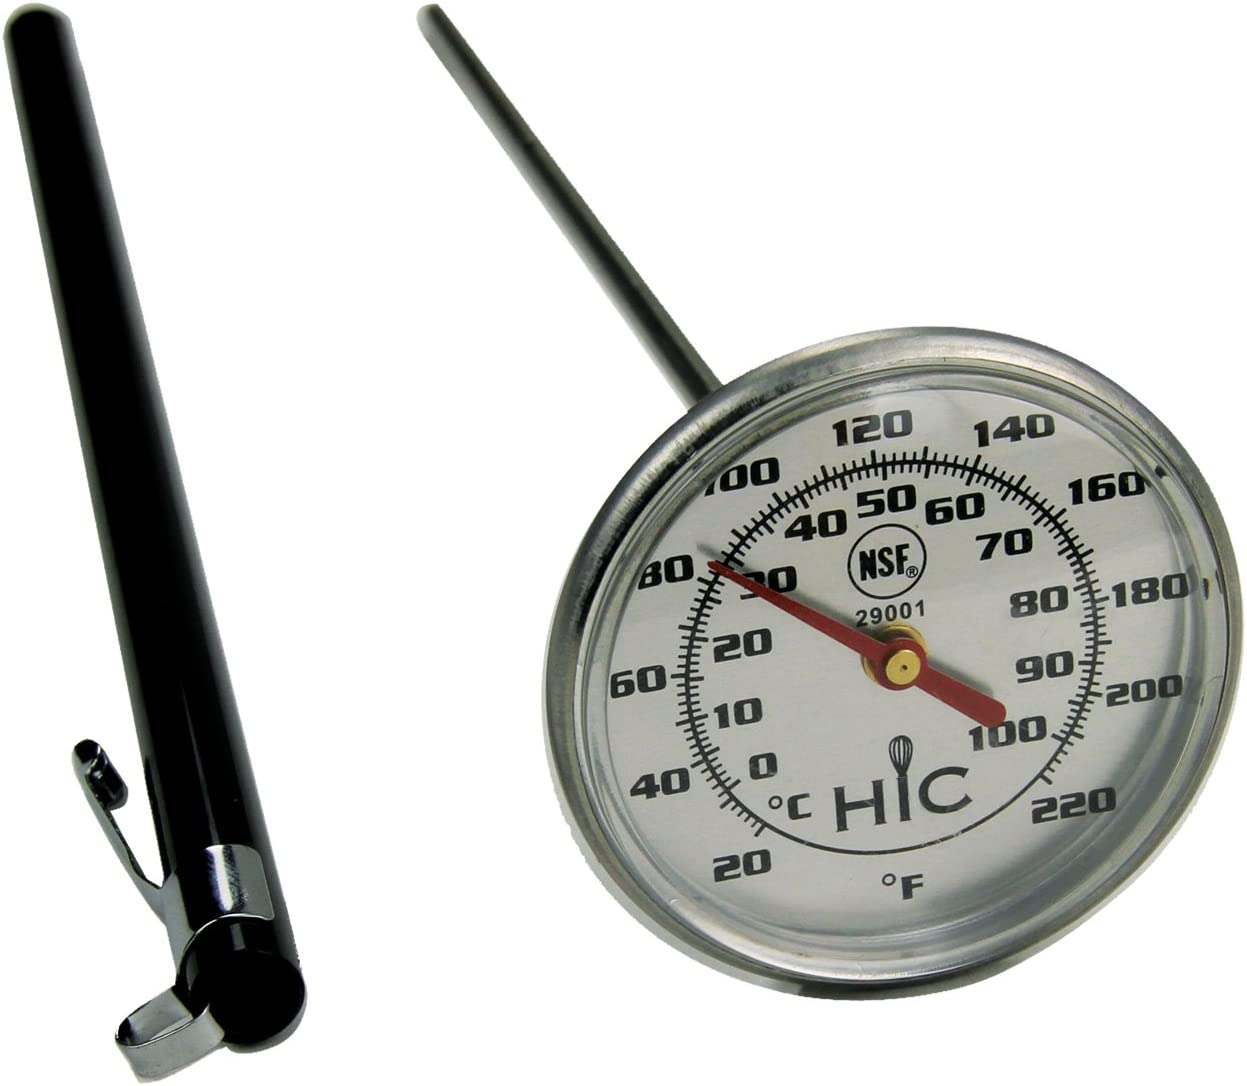 1 Stainless Steel and Protective Sheath with Internal Temperature Chart FBA/_29000 Instant-Read Meat Poultry Turkey Grill Thermometer Shatterproof Face HIC Harold Import Co